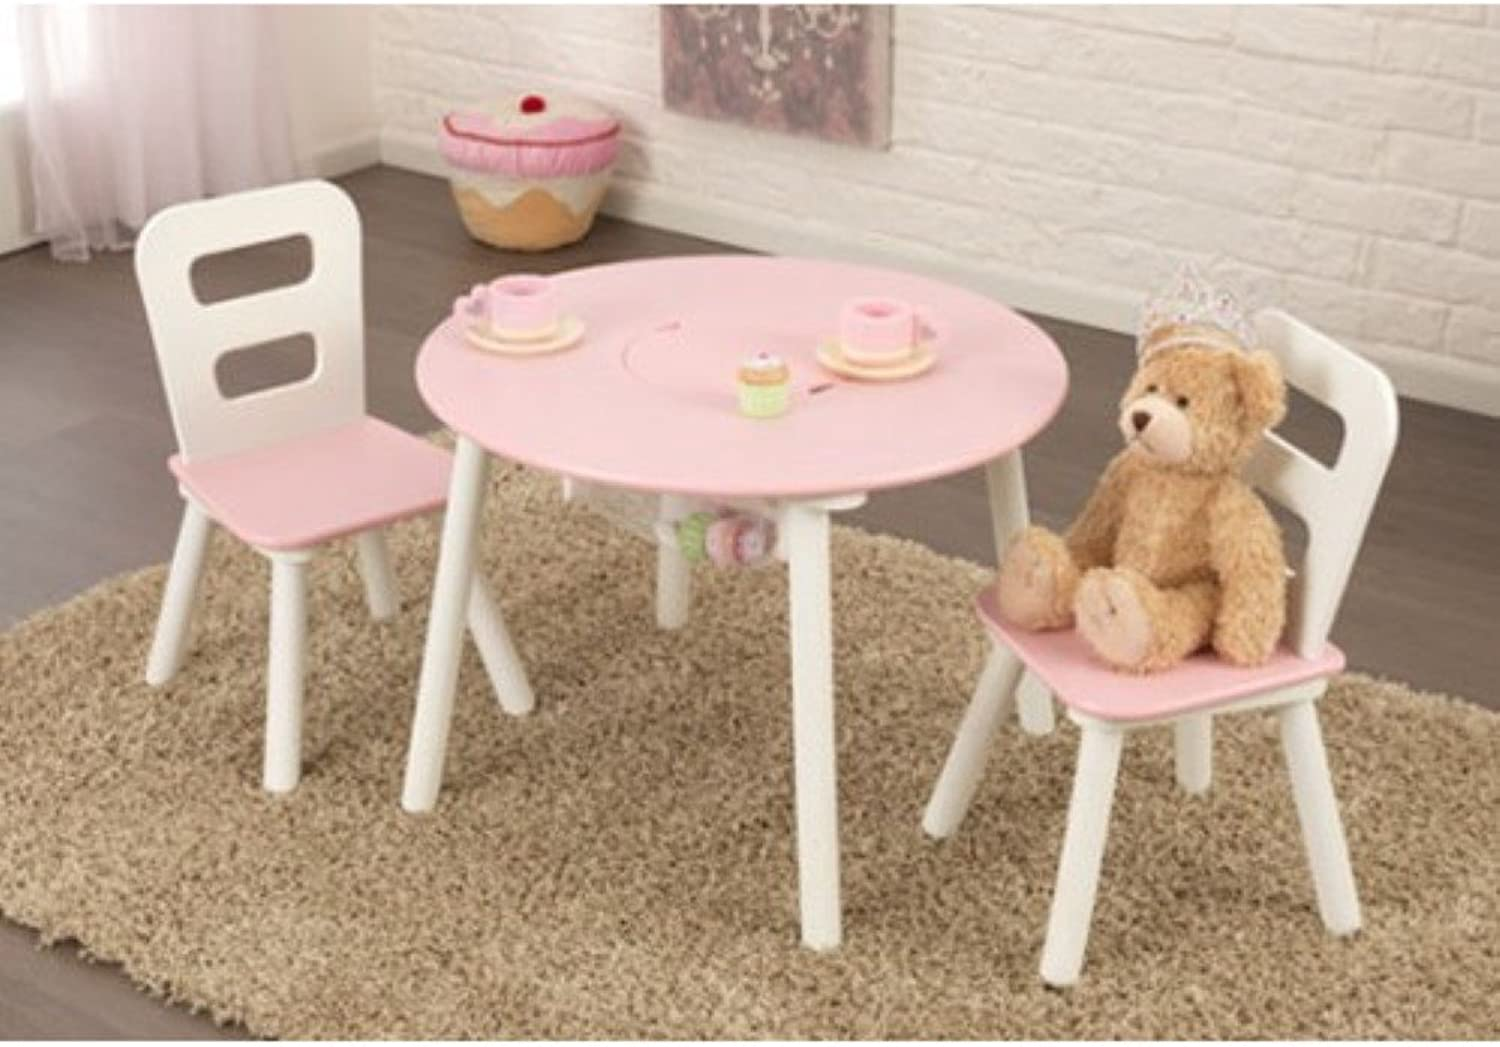 KidKraft Kids 3 Piece Table and Chair Set, White Pink